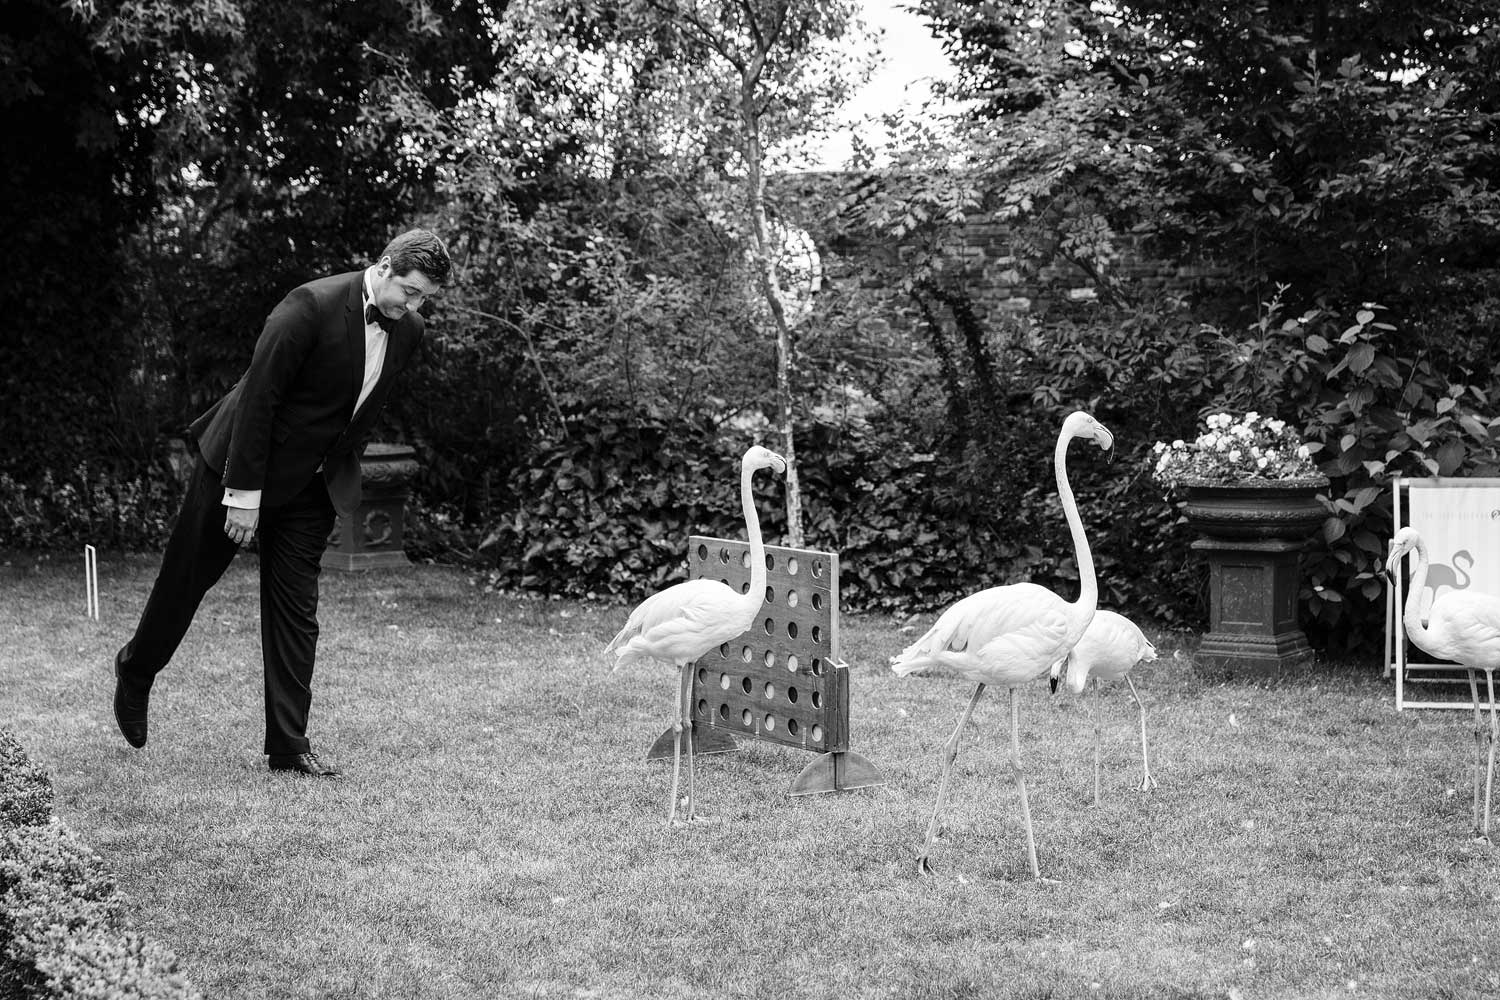 A groomsman pretends to be a flamingo at the wedding at the Roof Gardens - London wedding photographer